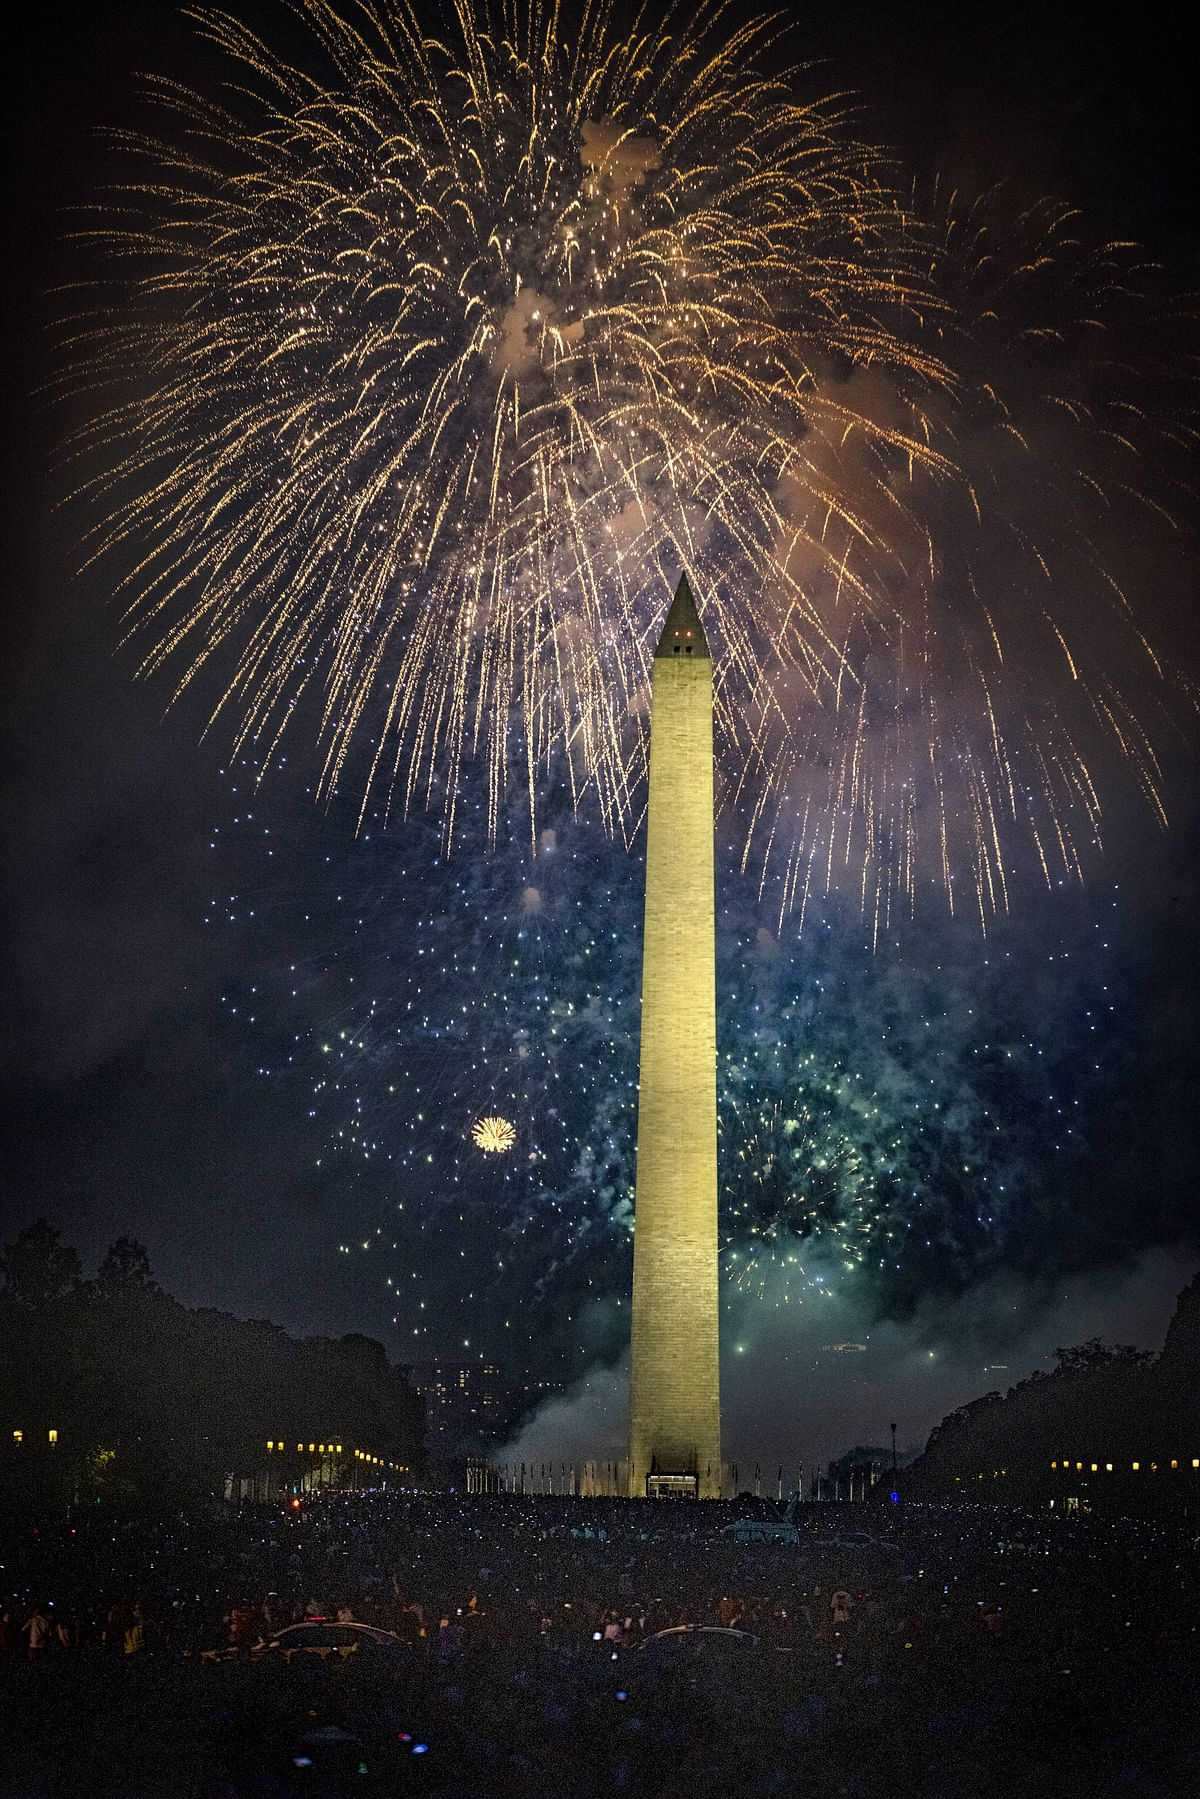 People fill the National Mall to watch the fireworks display during Independence Day celebrations on July 4, 2021 in Washington, DC.